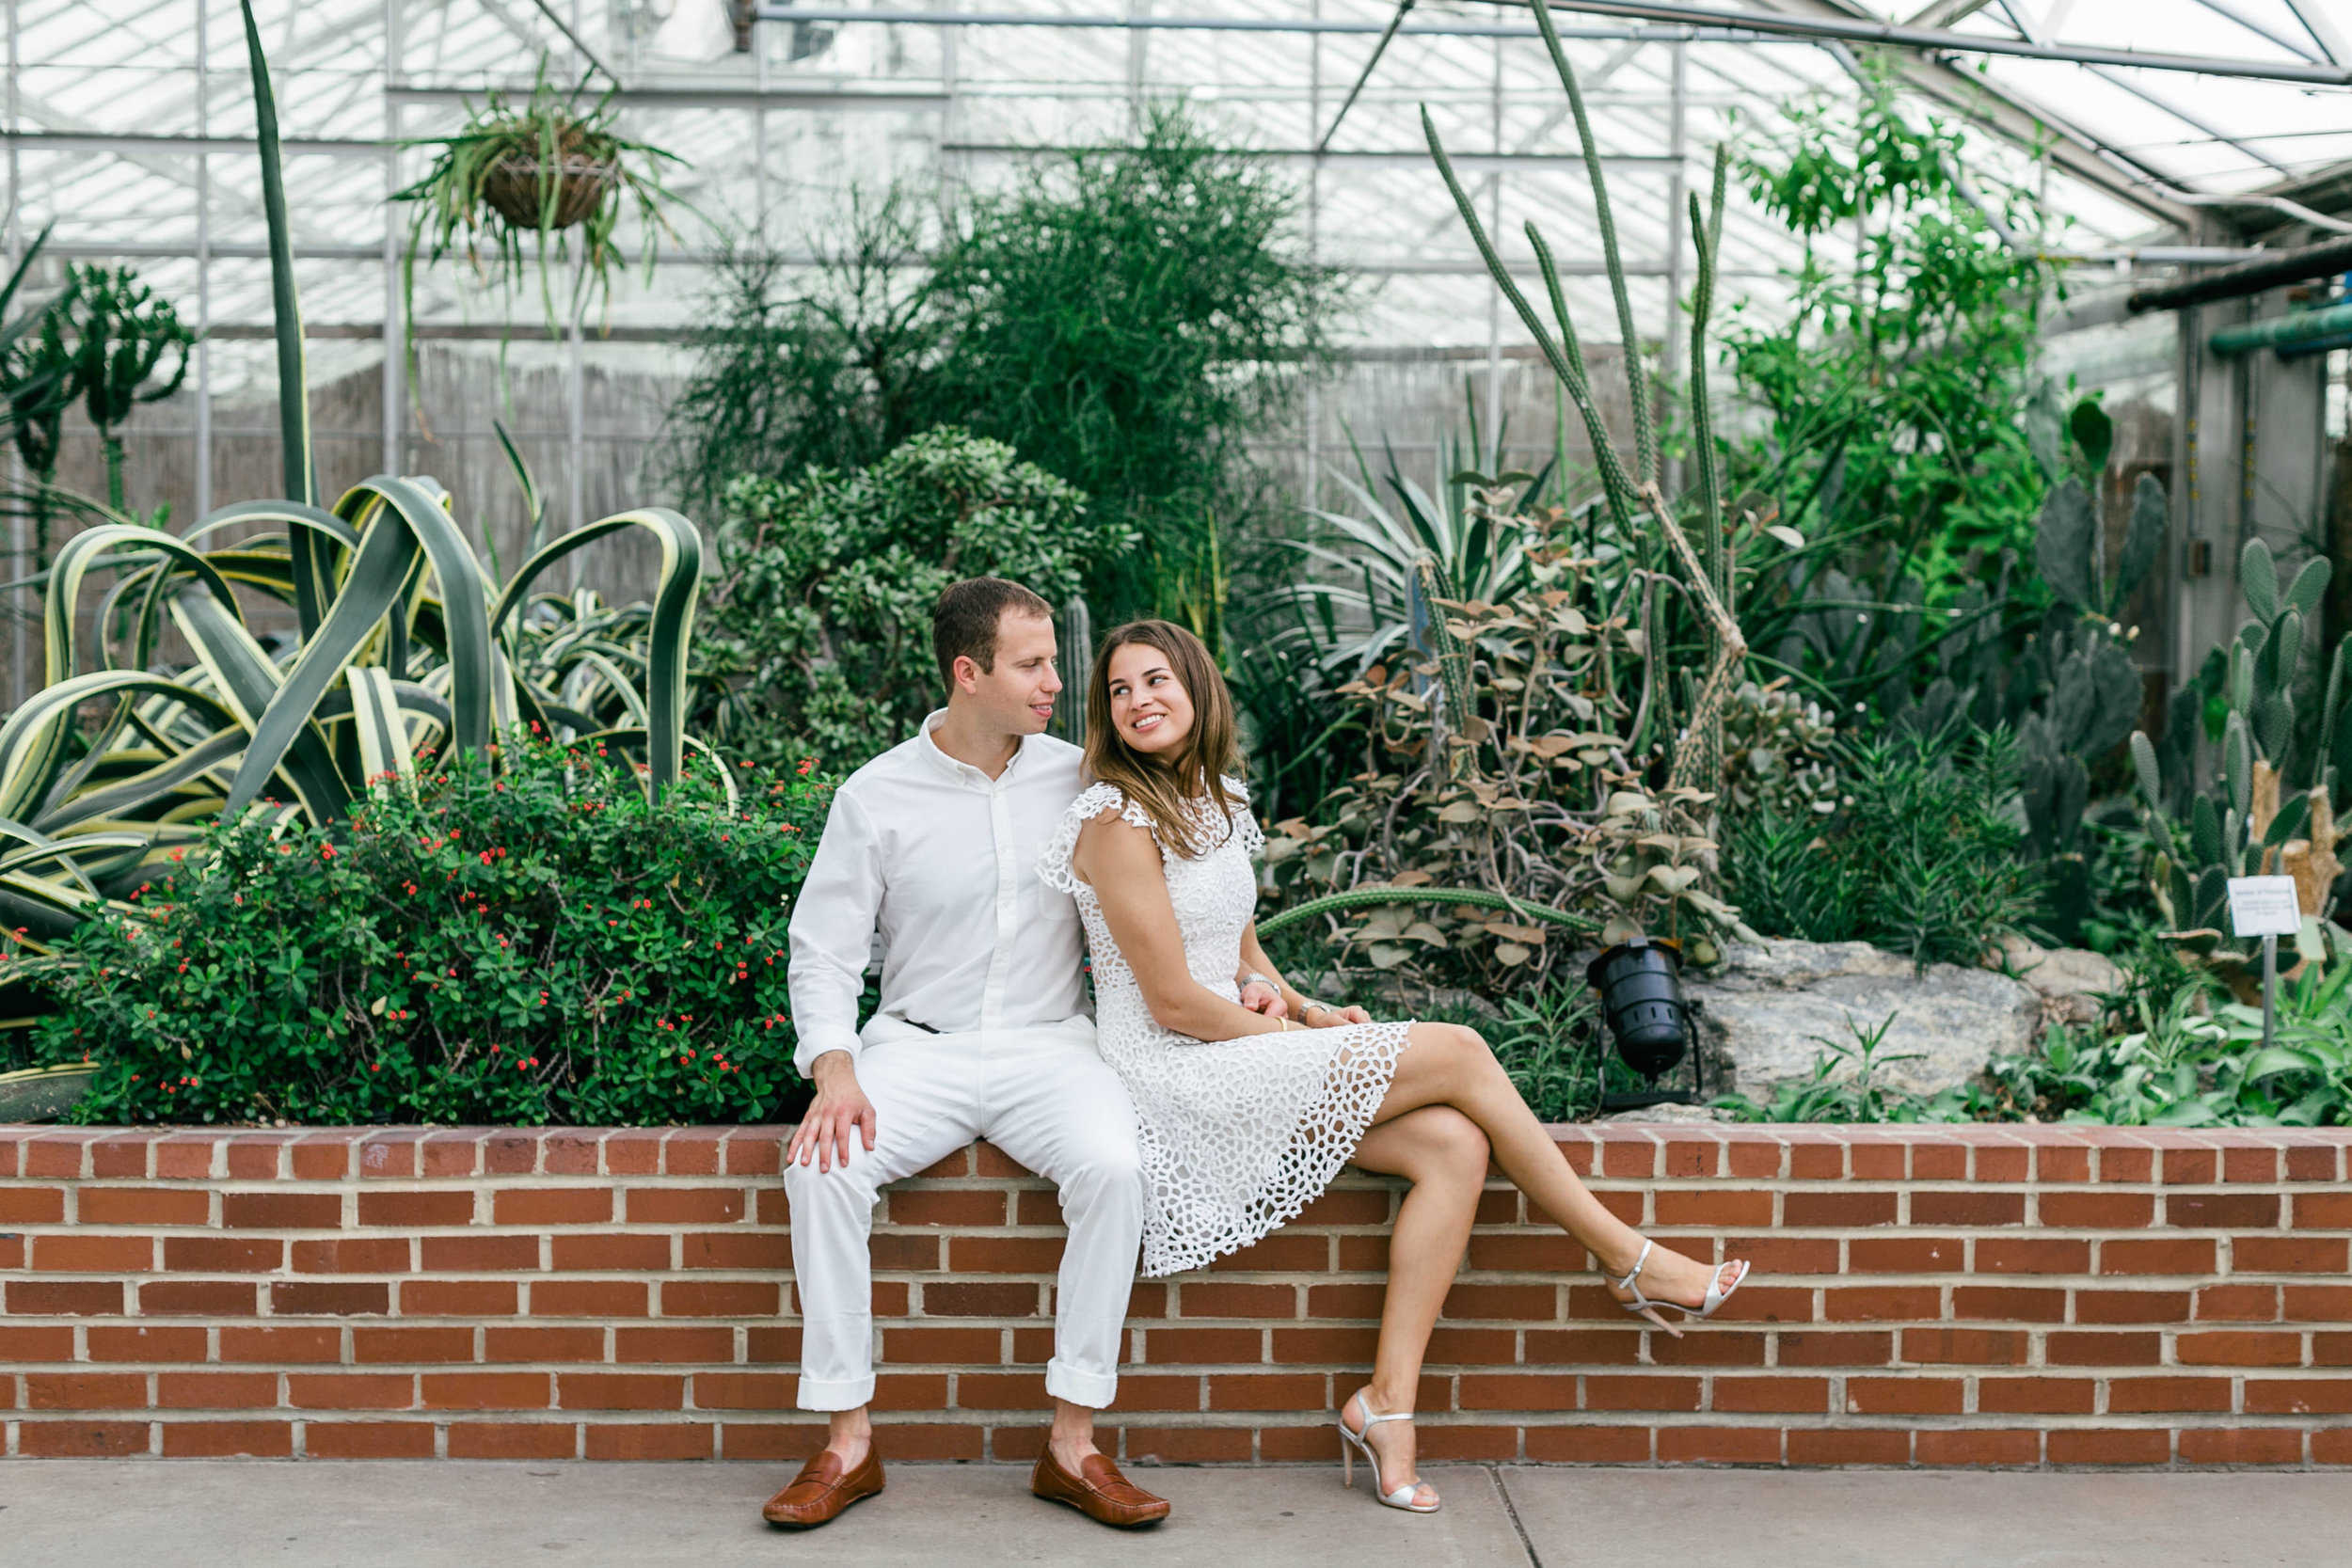 photography-family-natural-candid-engaged-fairmount-philadelphia-wedding-horticultural center-modern-lifestyle-20.JPG